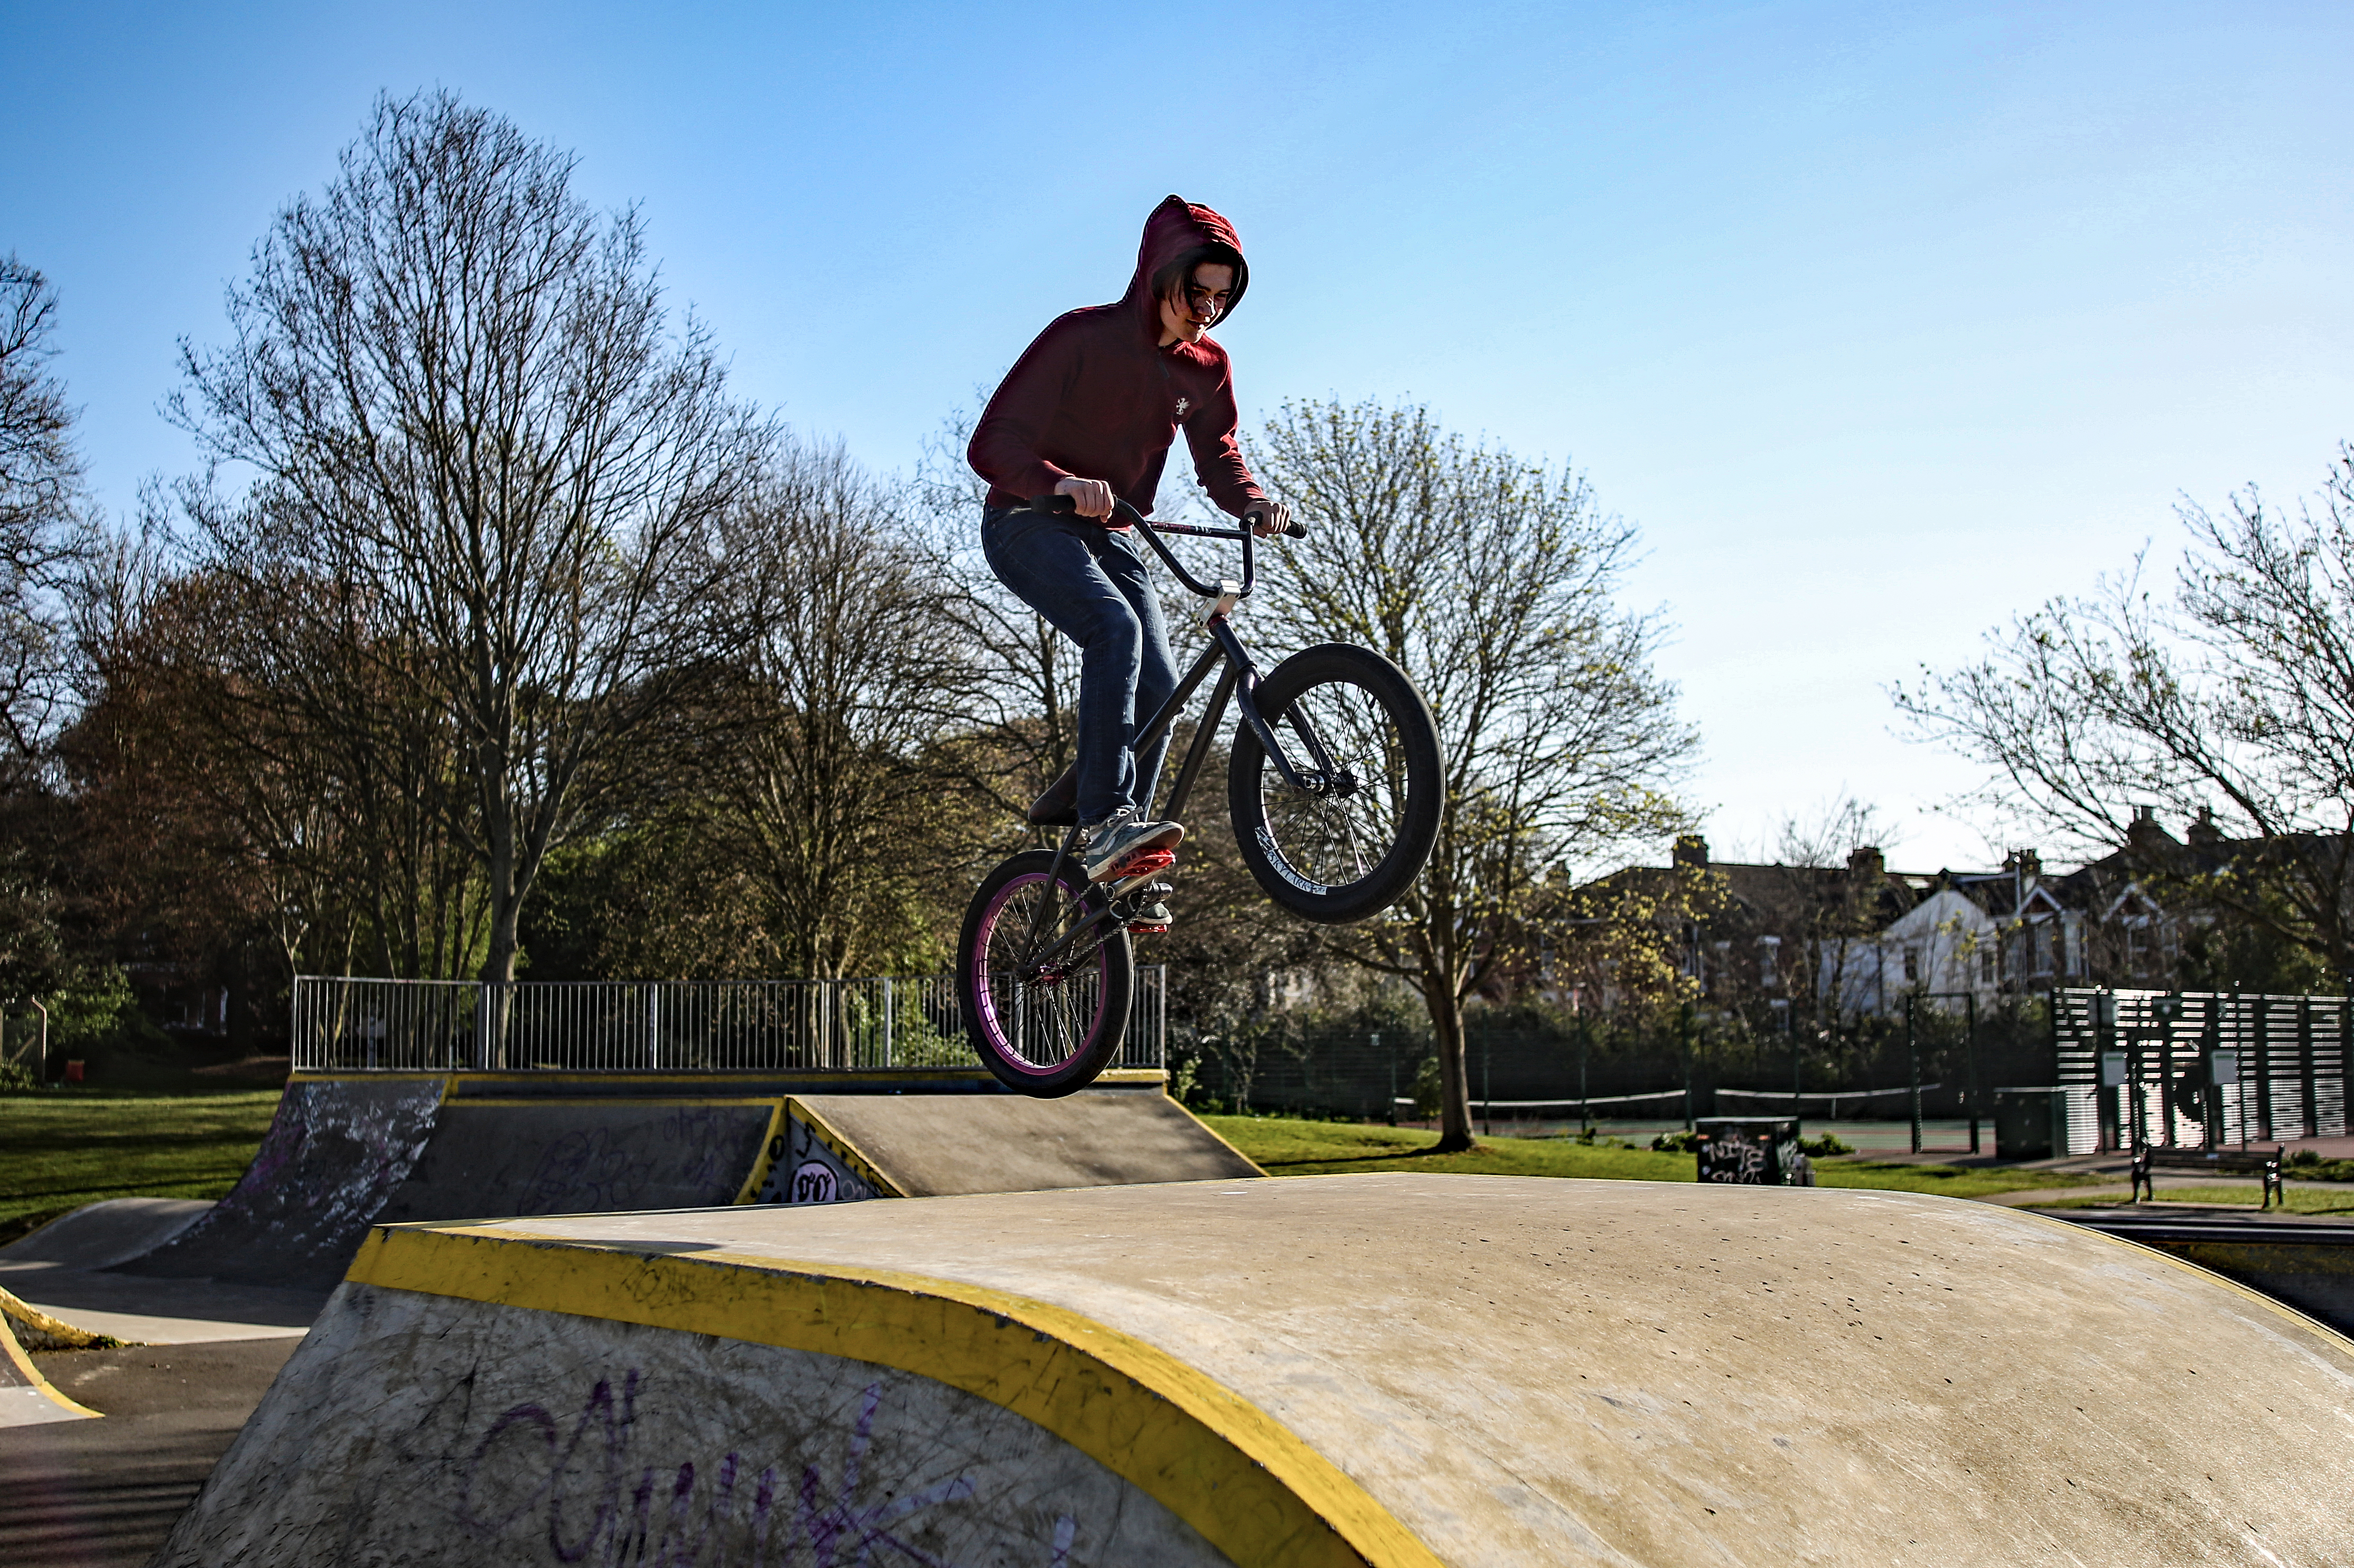 A boy on his BMX rides up a ramp as he gets his daily exercise in a skatepark while the UK continues in lockdown to help curb the spread of the coronavirus.